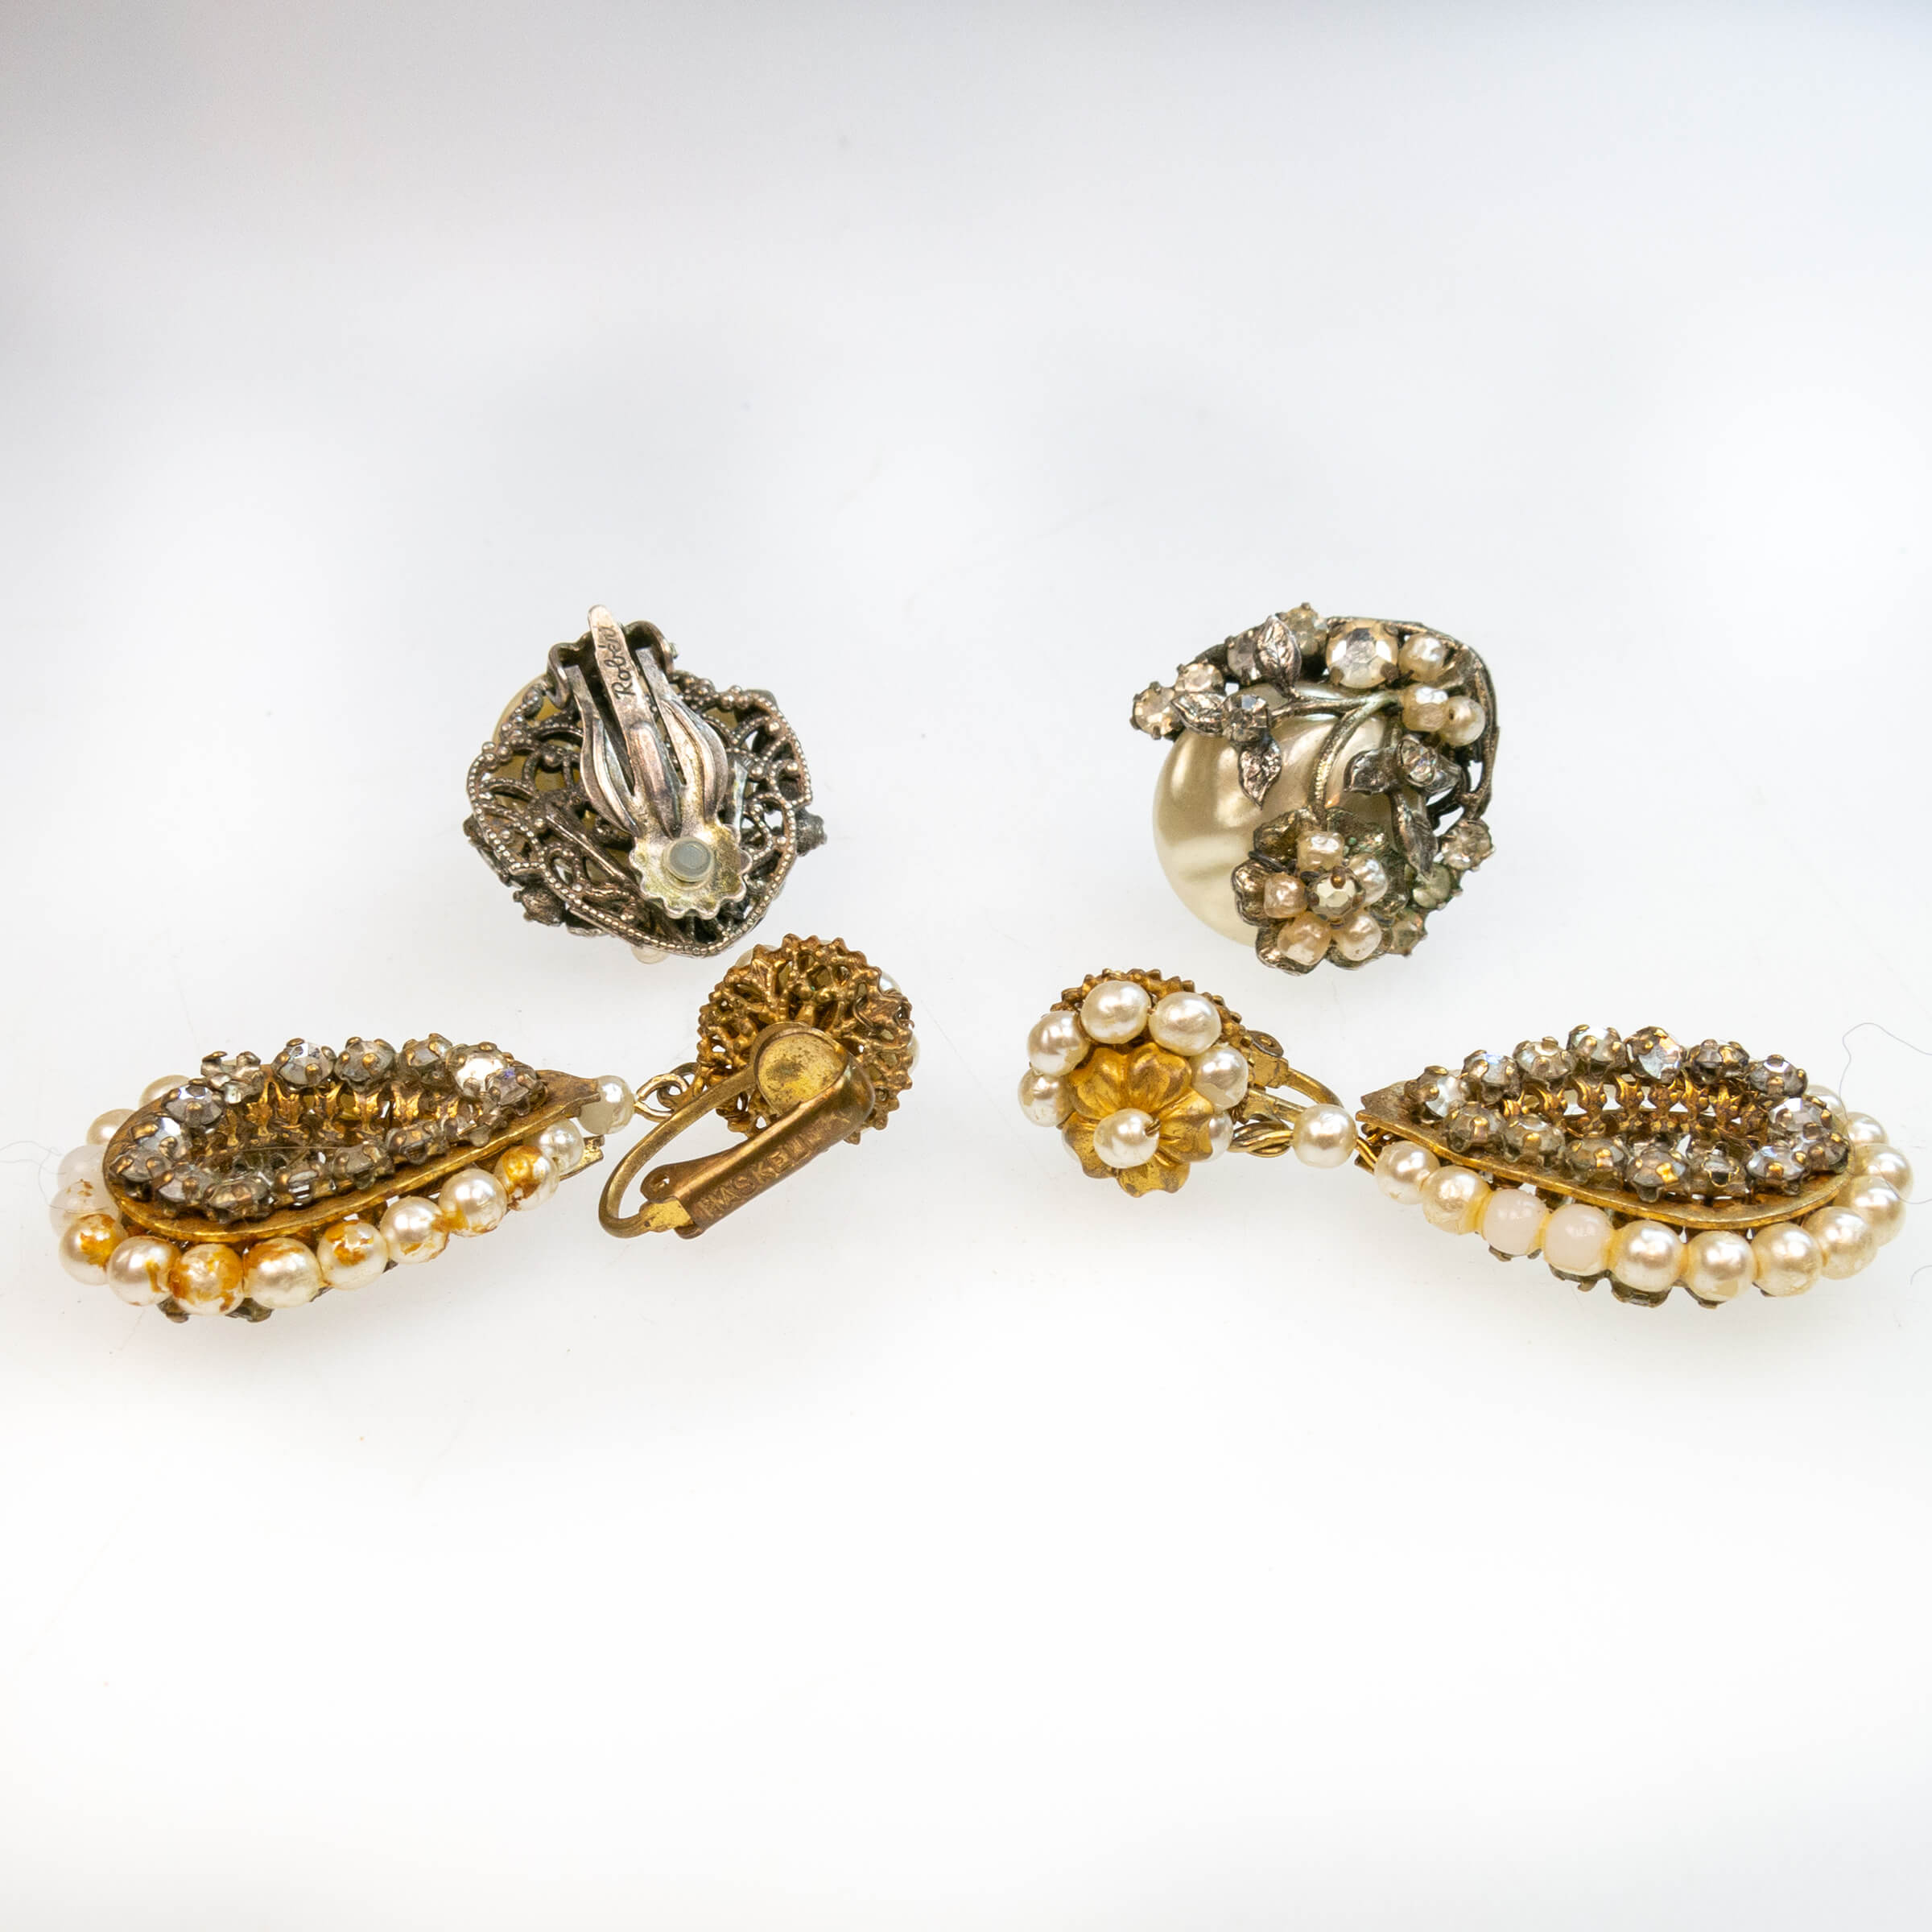 Pair Of Robert And A Pair Of Miriam Haskell Gold-Tone Metal Clip-Back Earrings